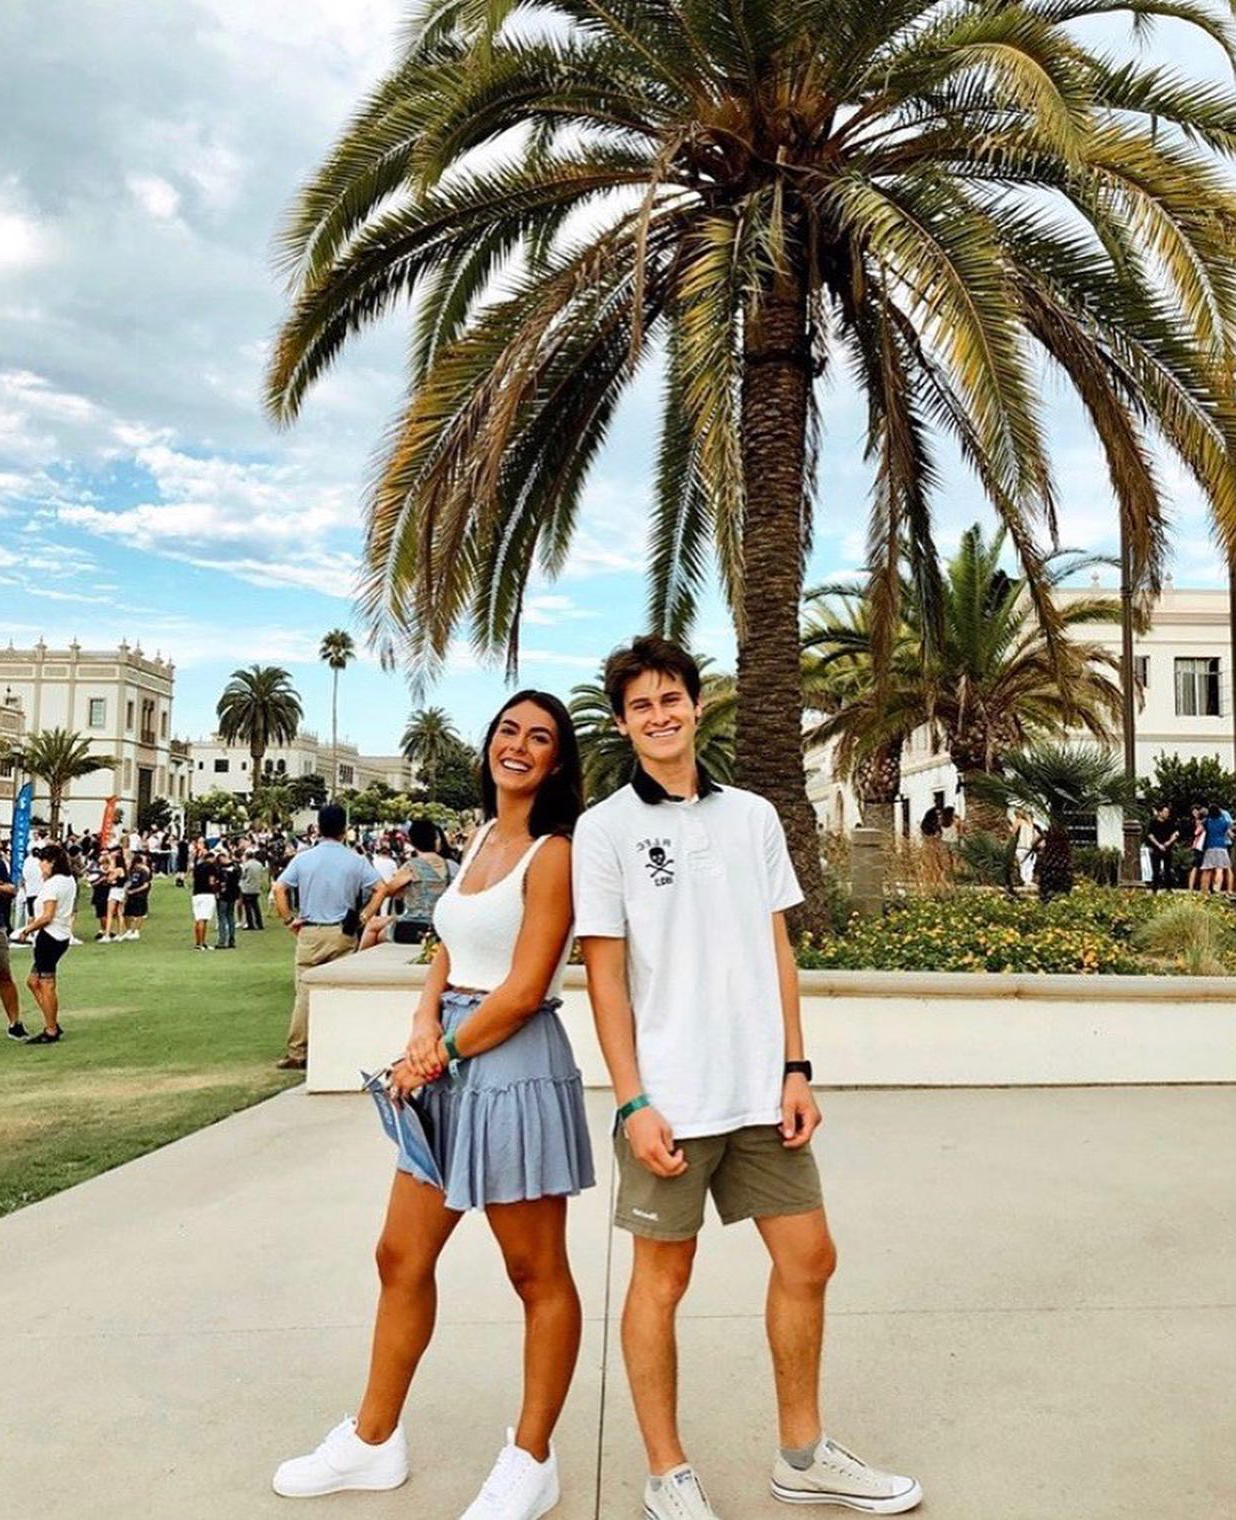 Our @uofsandiego semester is coming to an end. Let's take a look back through the lens of our...